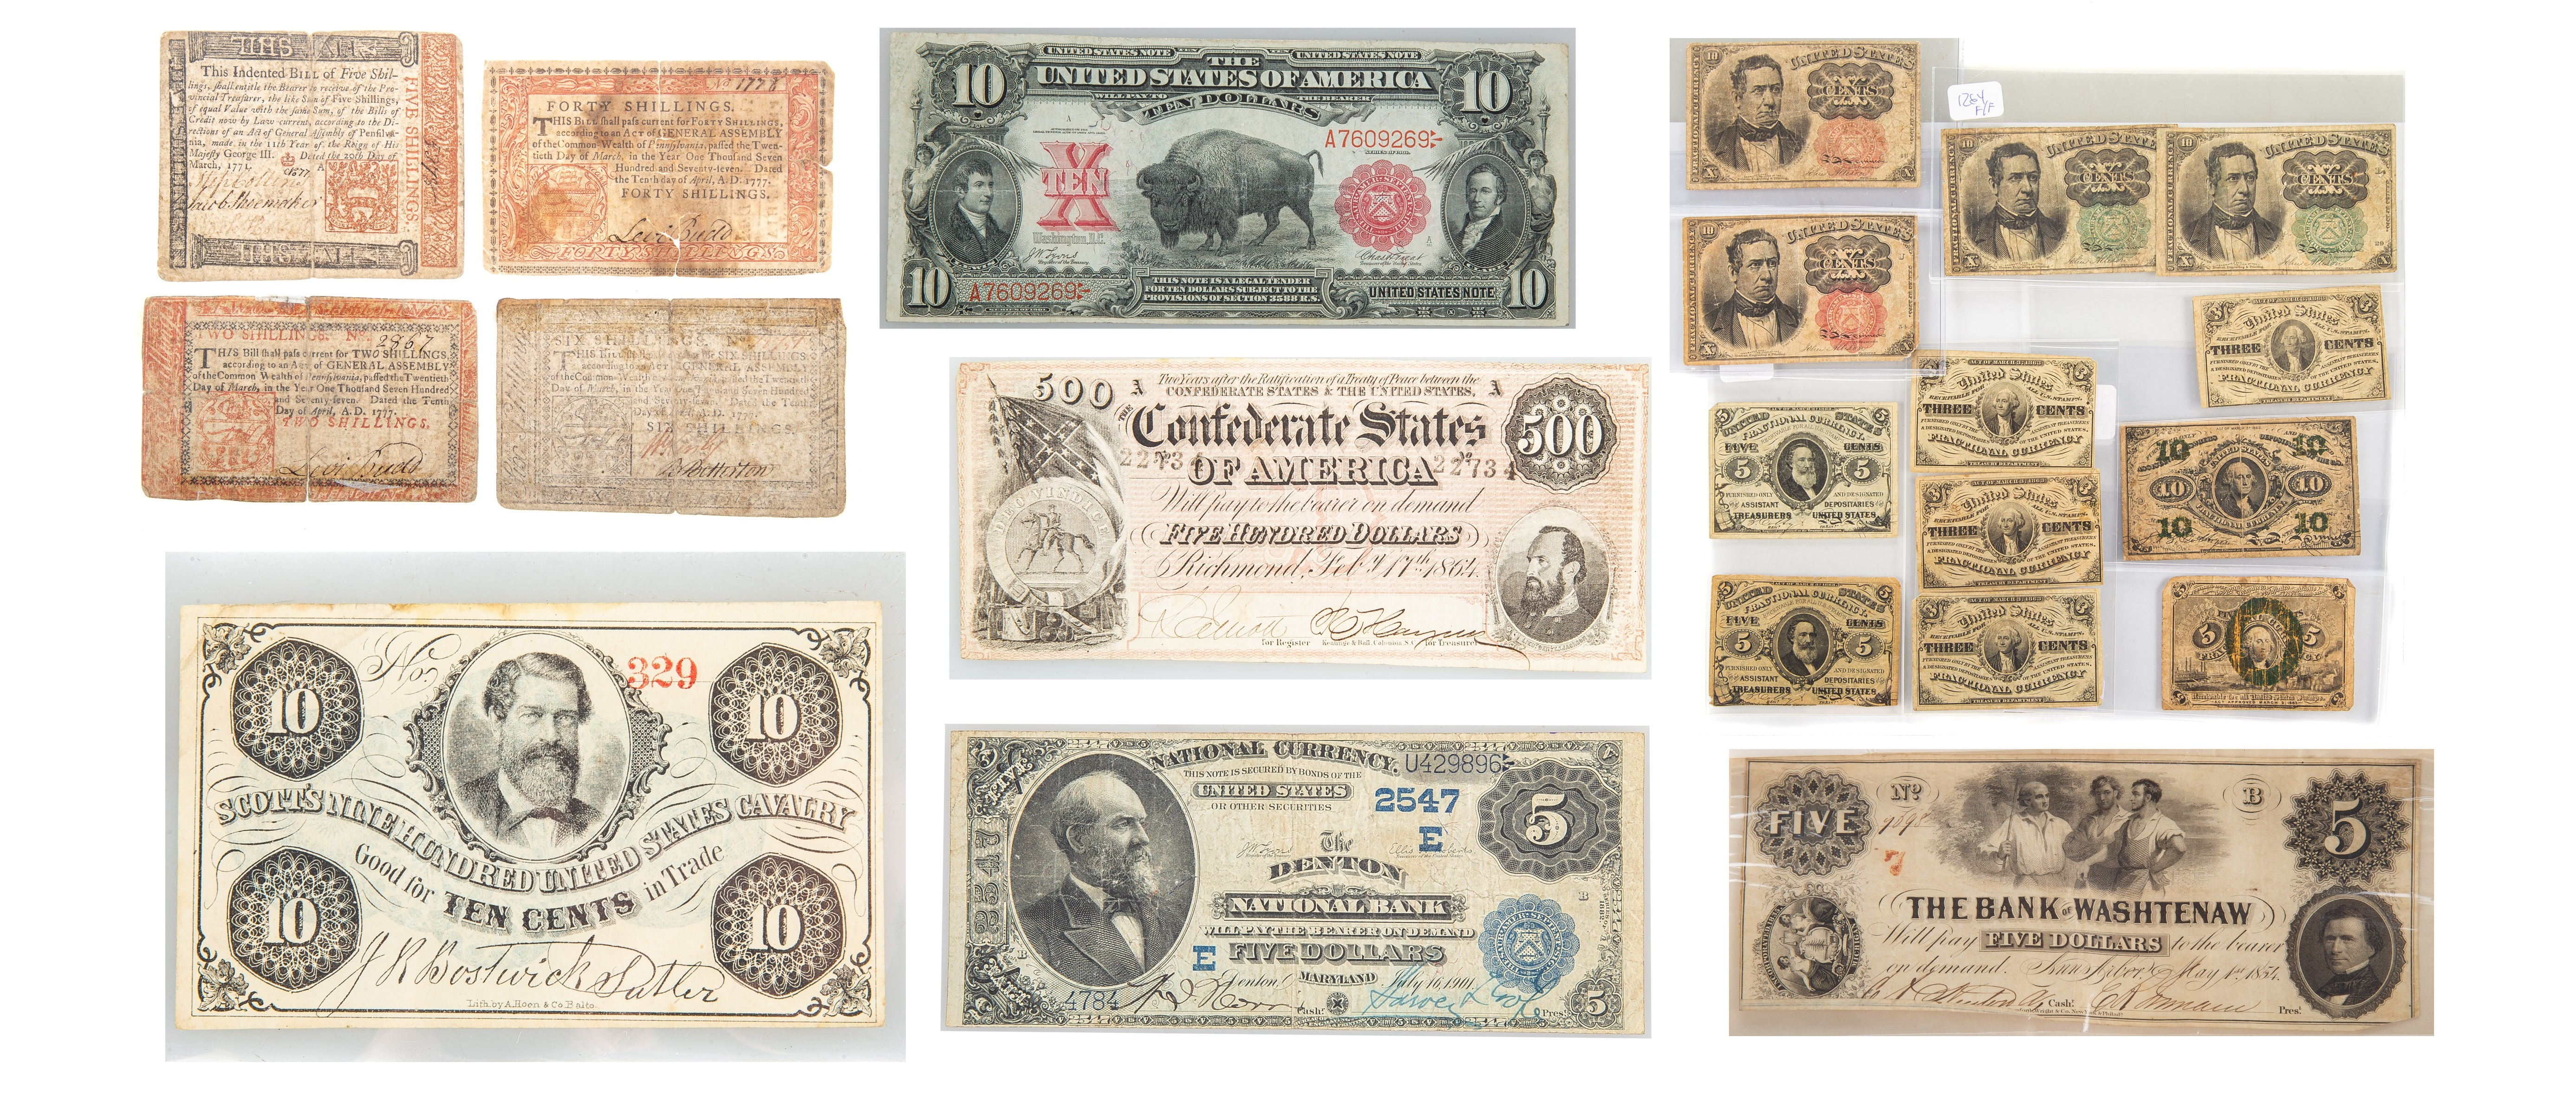 A US History Through its Currency